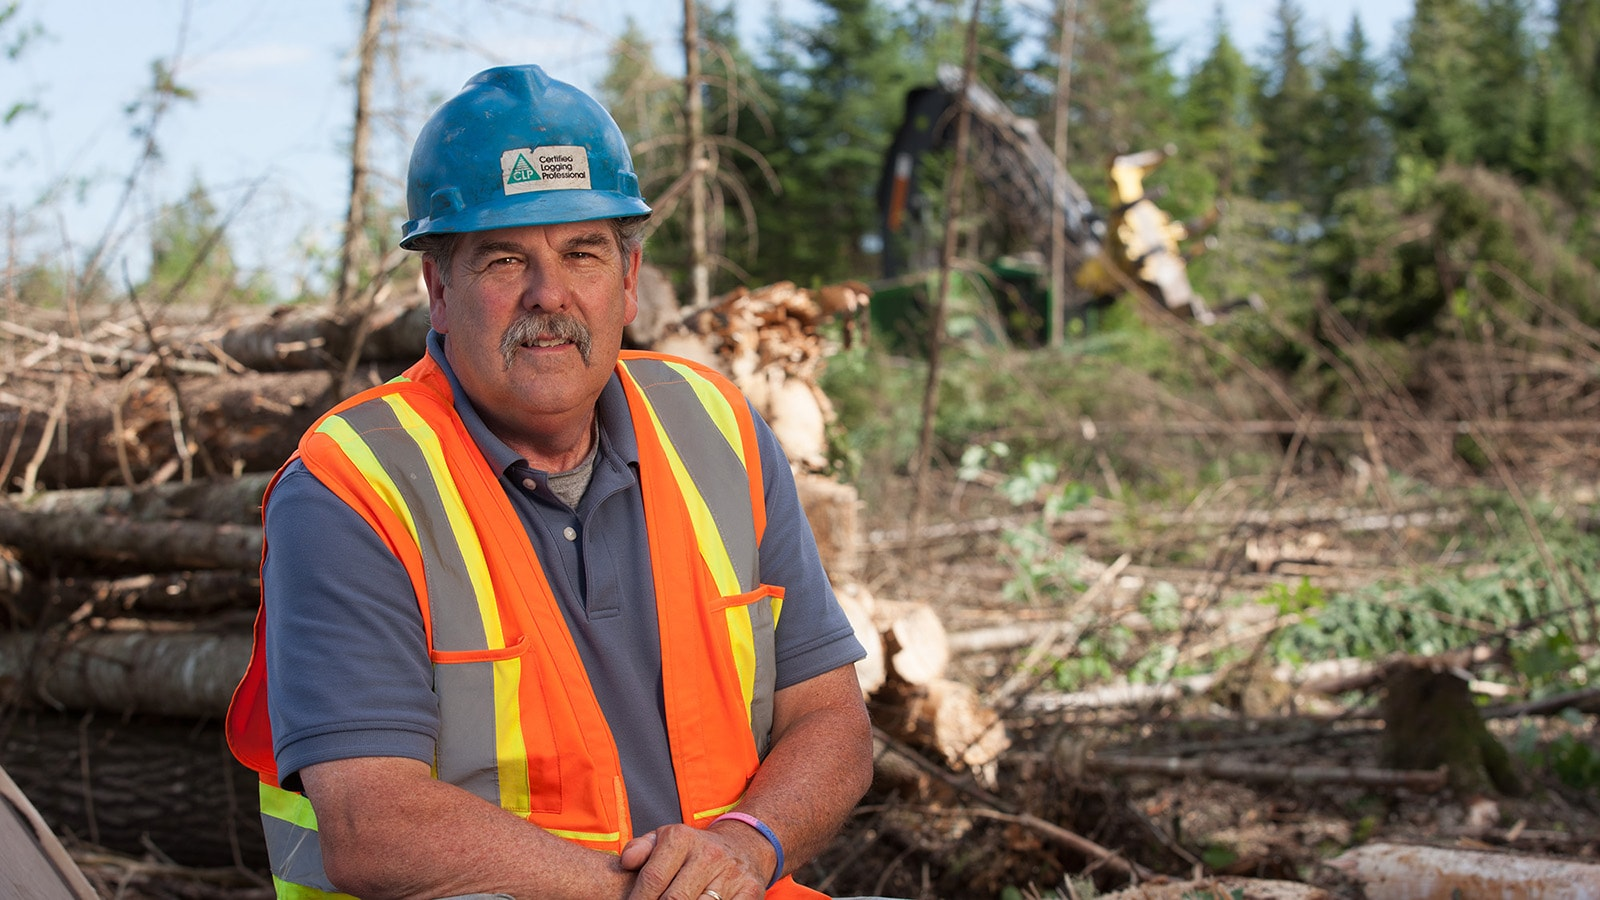 Dan Melcher poses with his logging operation in the background